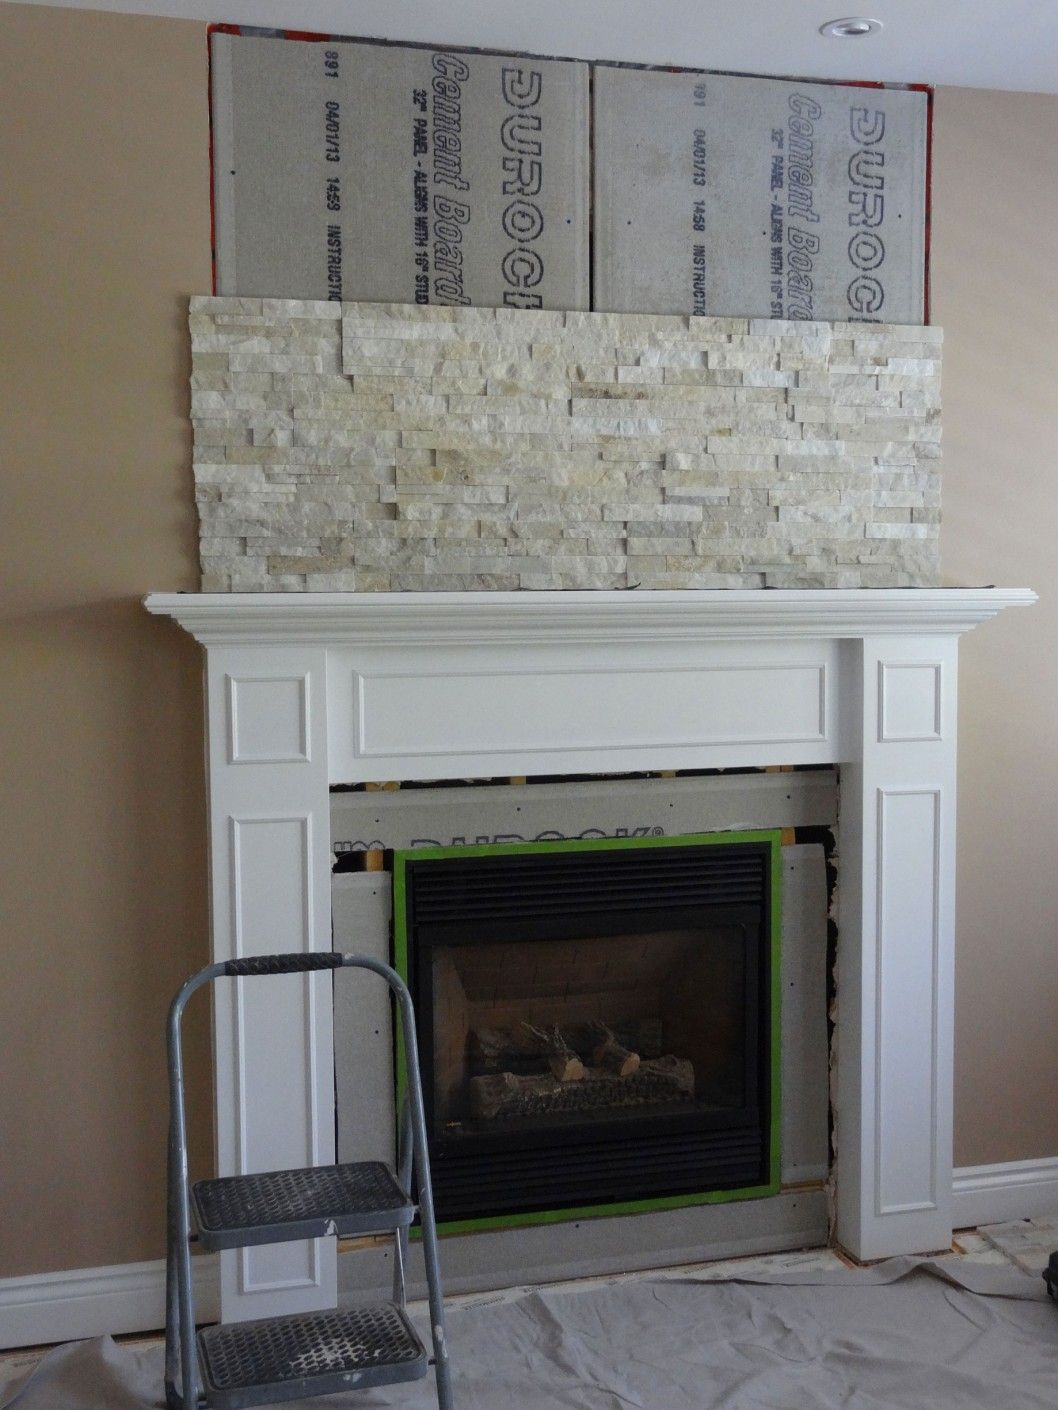 Diy Fireplace Refacing Stone Make An Easy Fireplace Refacing Fireplace+refacing+ideas | Stone Refacing Gas Fireplace